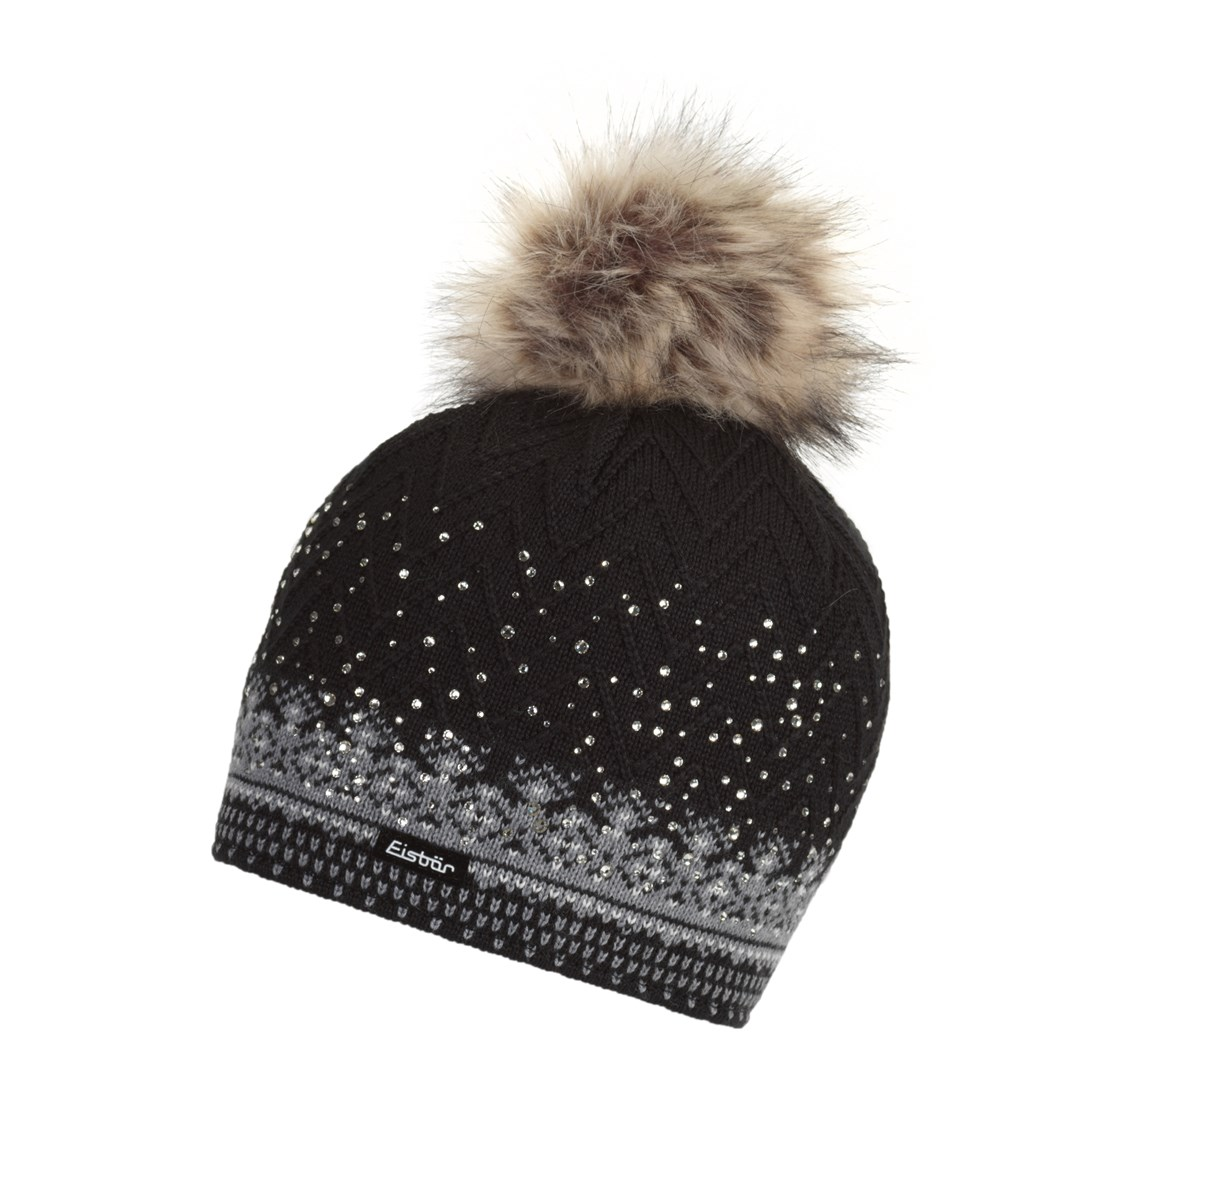 1c4f0cc6c04 Eisbar Connor Lux Ladies Crystal Hat Black. 0 (Be the first to add a  review!)